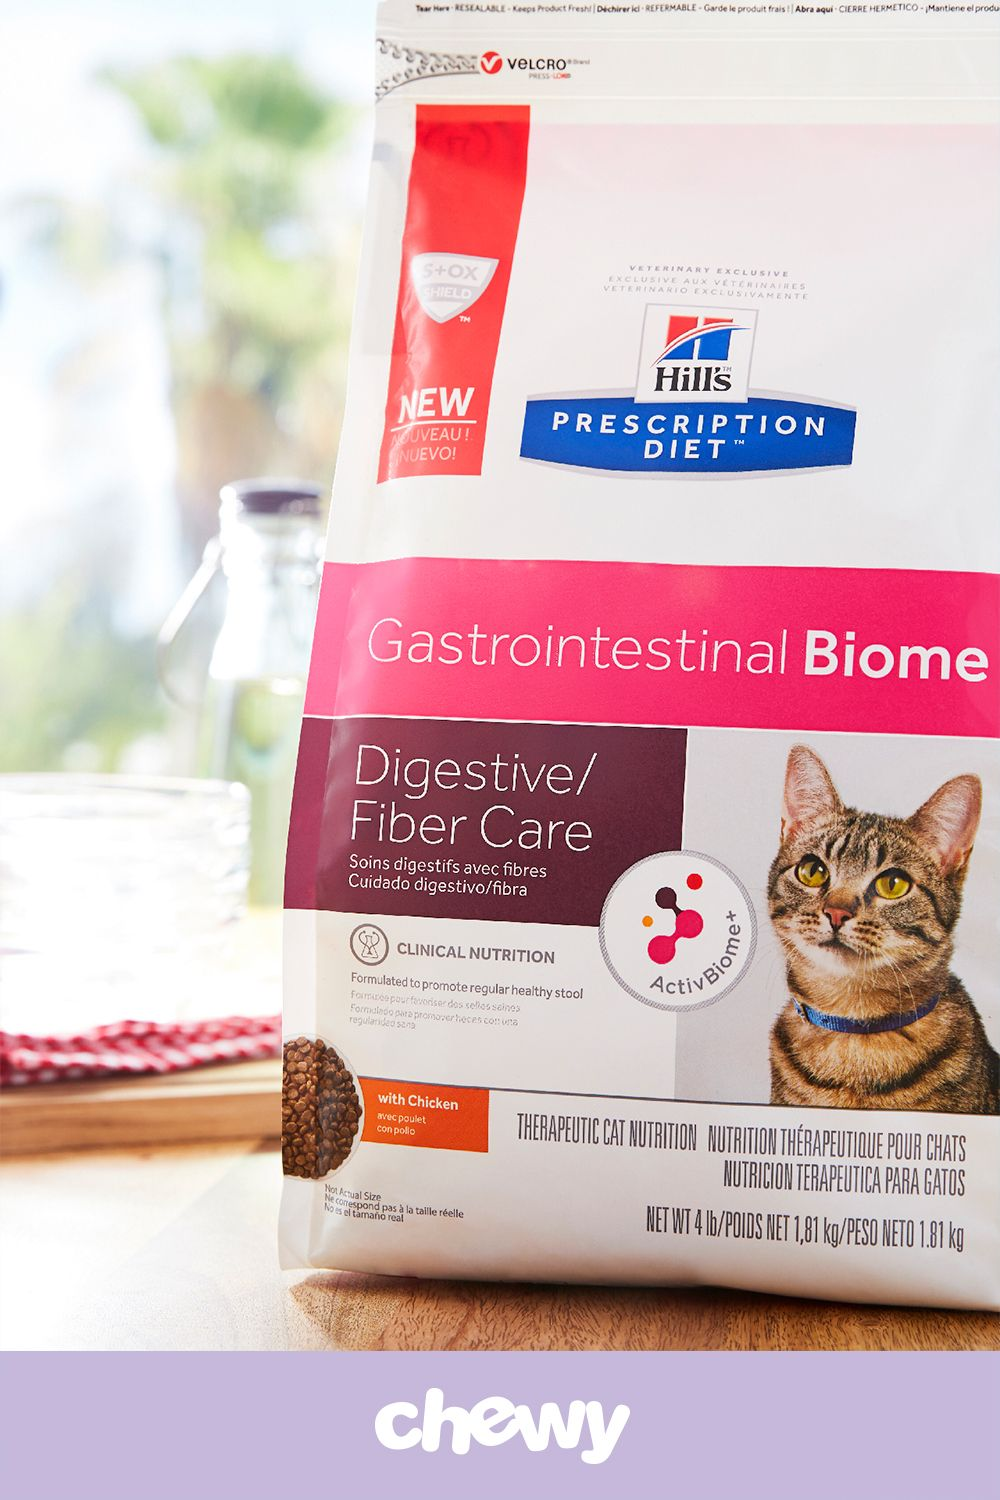 Hill S Prescription Diet Gastrointestinal Biome Digestive Fiber Care With Chicken Dry Cat Food 4 Lb Bag Chewy Com Hills Prescription Diet Digestion Cat Nutrition